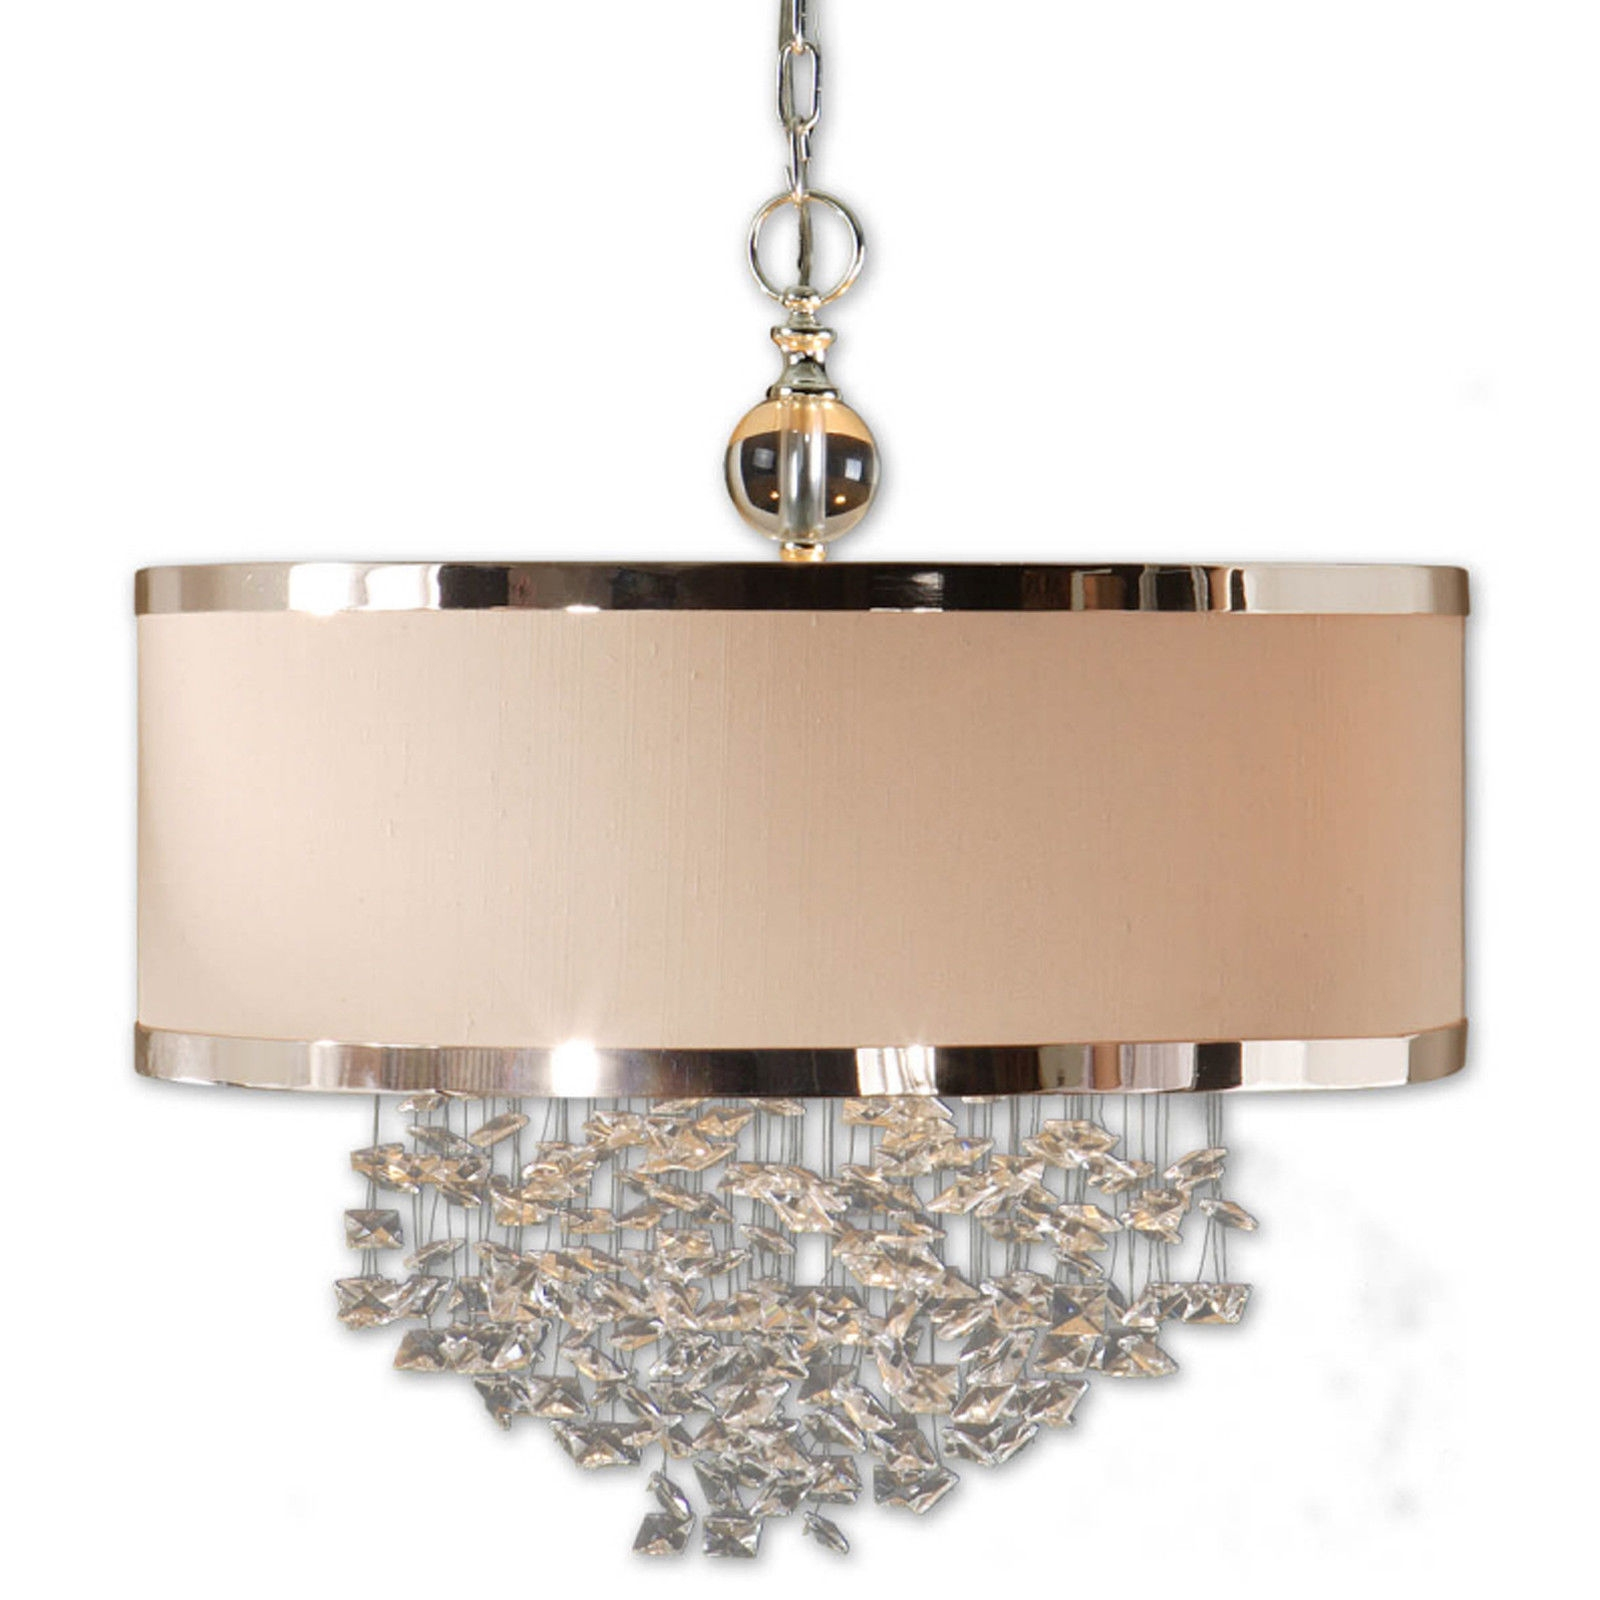 Innovative Drum Shade Chandeliers Best Home Decor Inspirations With Chandelier With Shades And Crystals (Image 19 of 25)